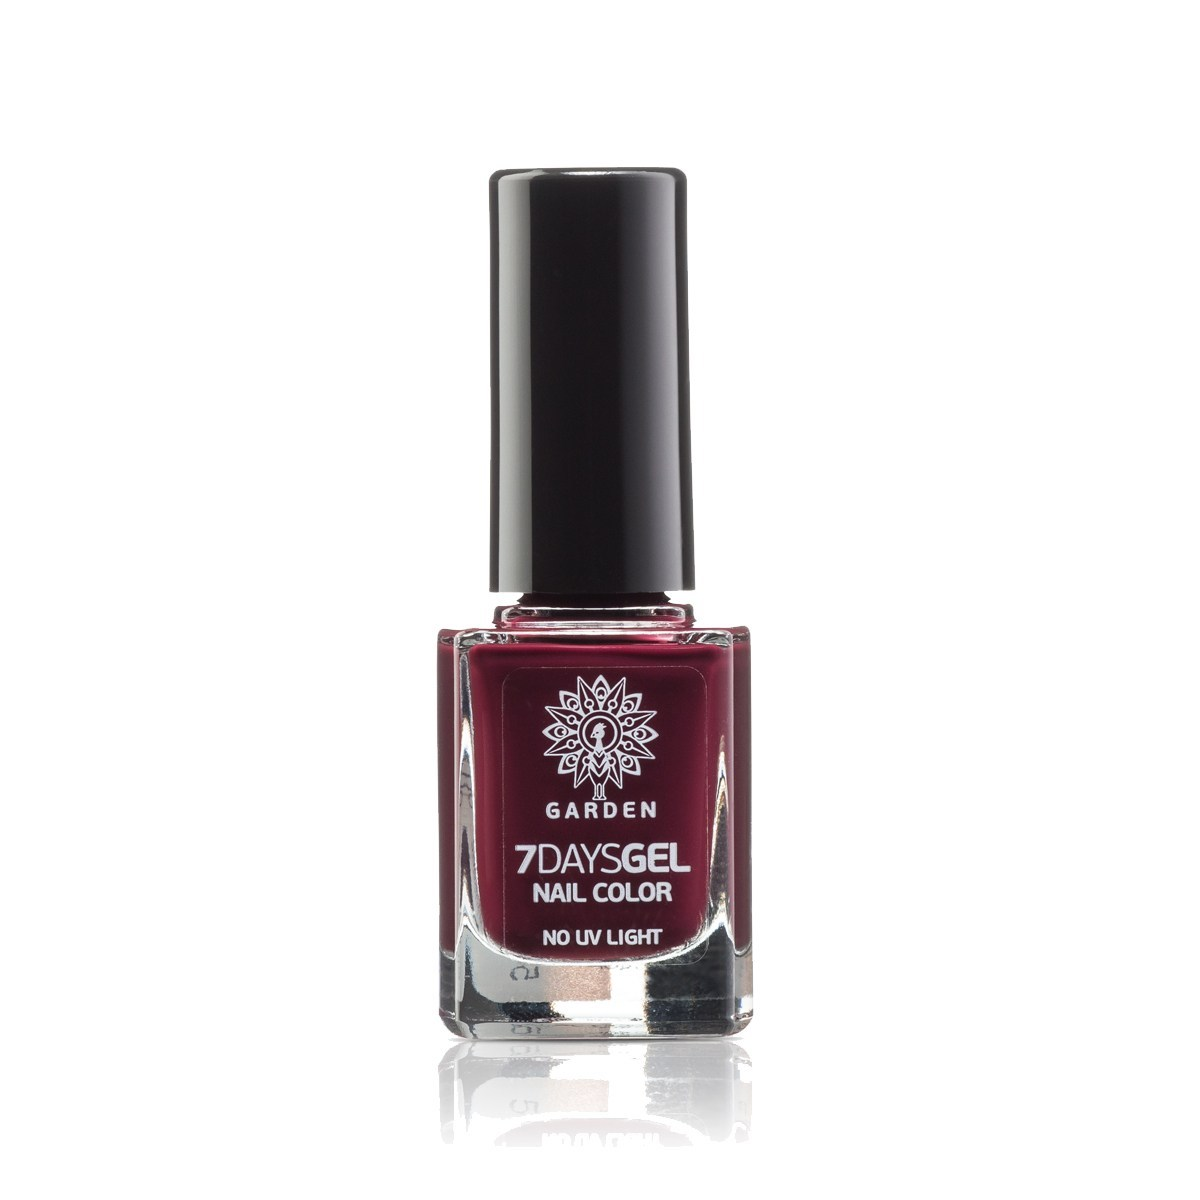 GARDEN 7Days Gel Nail Color - 45